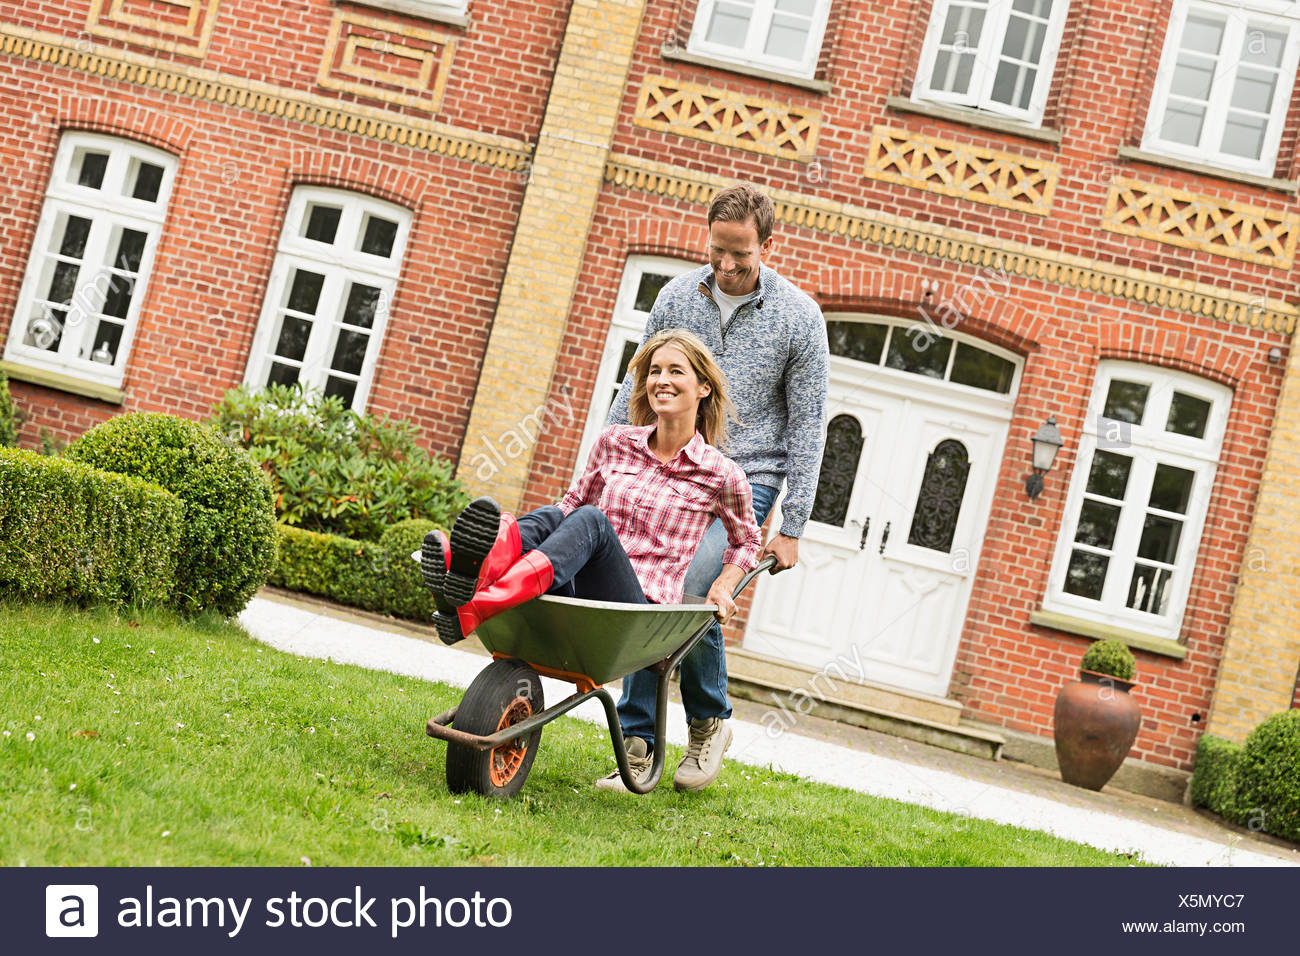 Mid adult man pushing woman in brouette Banque D'Images